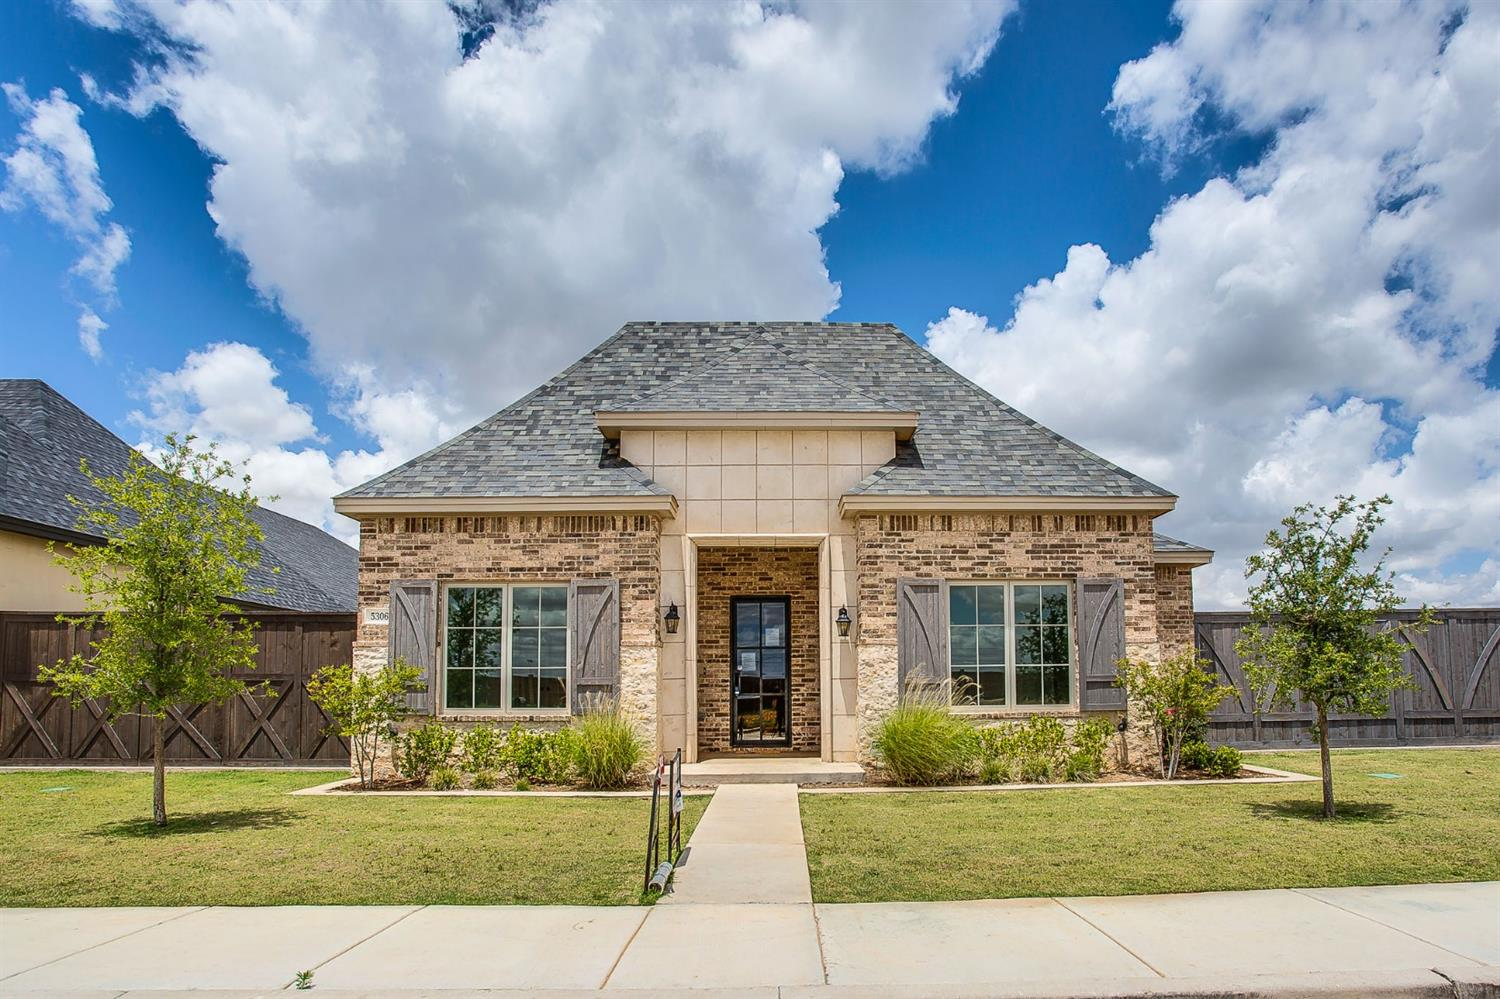 Welcome to Lubbock's newest premier neighborhood, Abbey Glen.  Abbey Glen is conveniently located in southwest Lubbock just west of Slide Rd. and 114th St.  This planned development is located in Cooper schools and will feature it own private park.  This beautiful garden home was built by the award winning Clearview Custom Homes, and offers an open floor plan.  The large great room, gourmet kitchen, and separate dinning room are perfect for entertaining.  The isolated Master offers double vanities, separate walk in shower and tub, spacious closet!